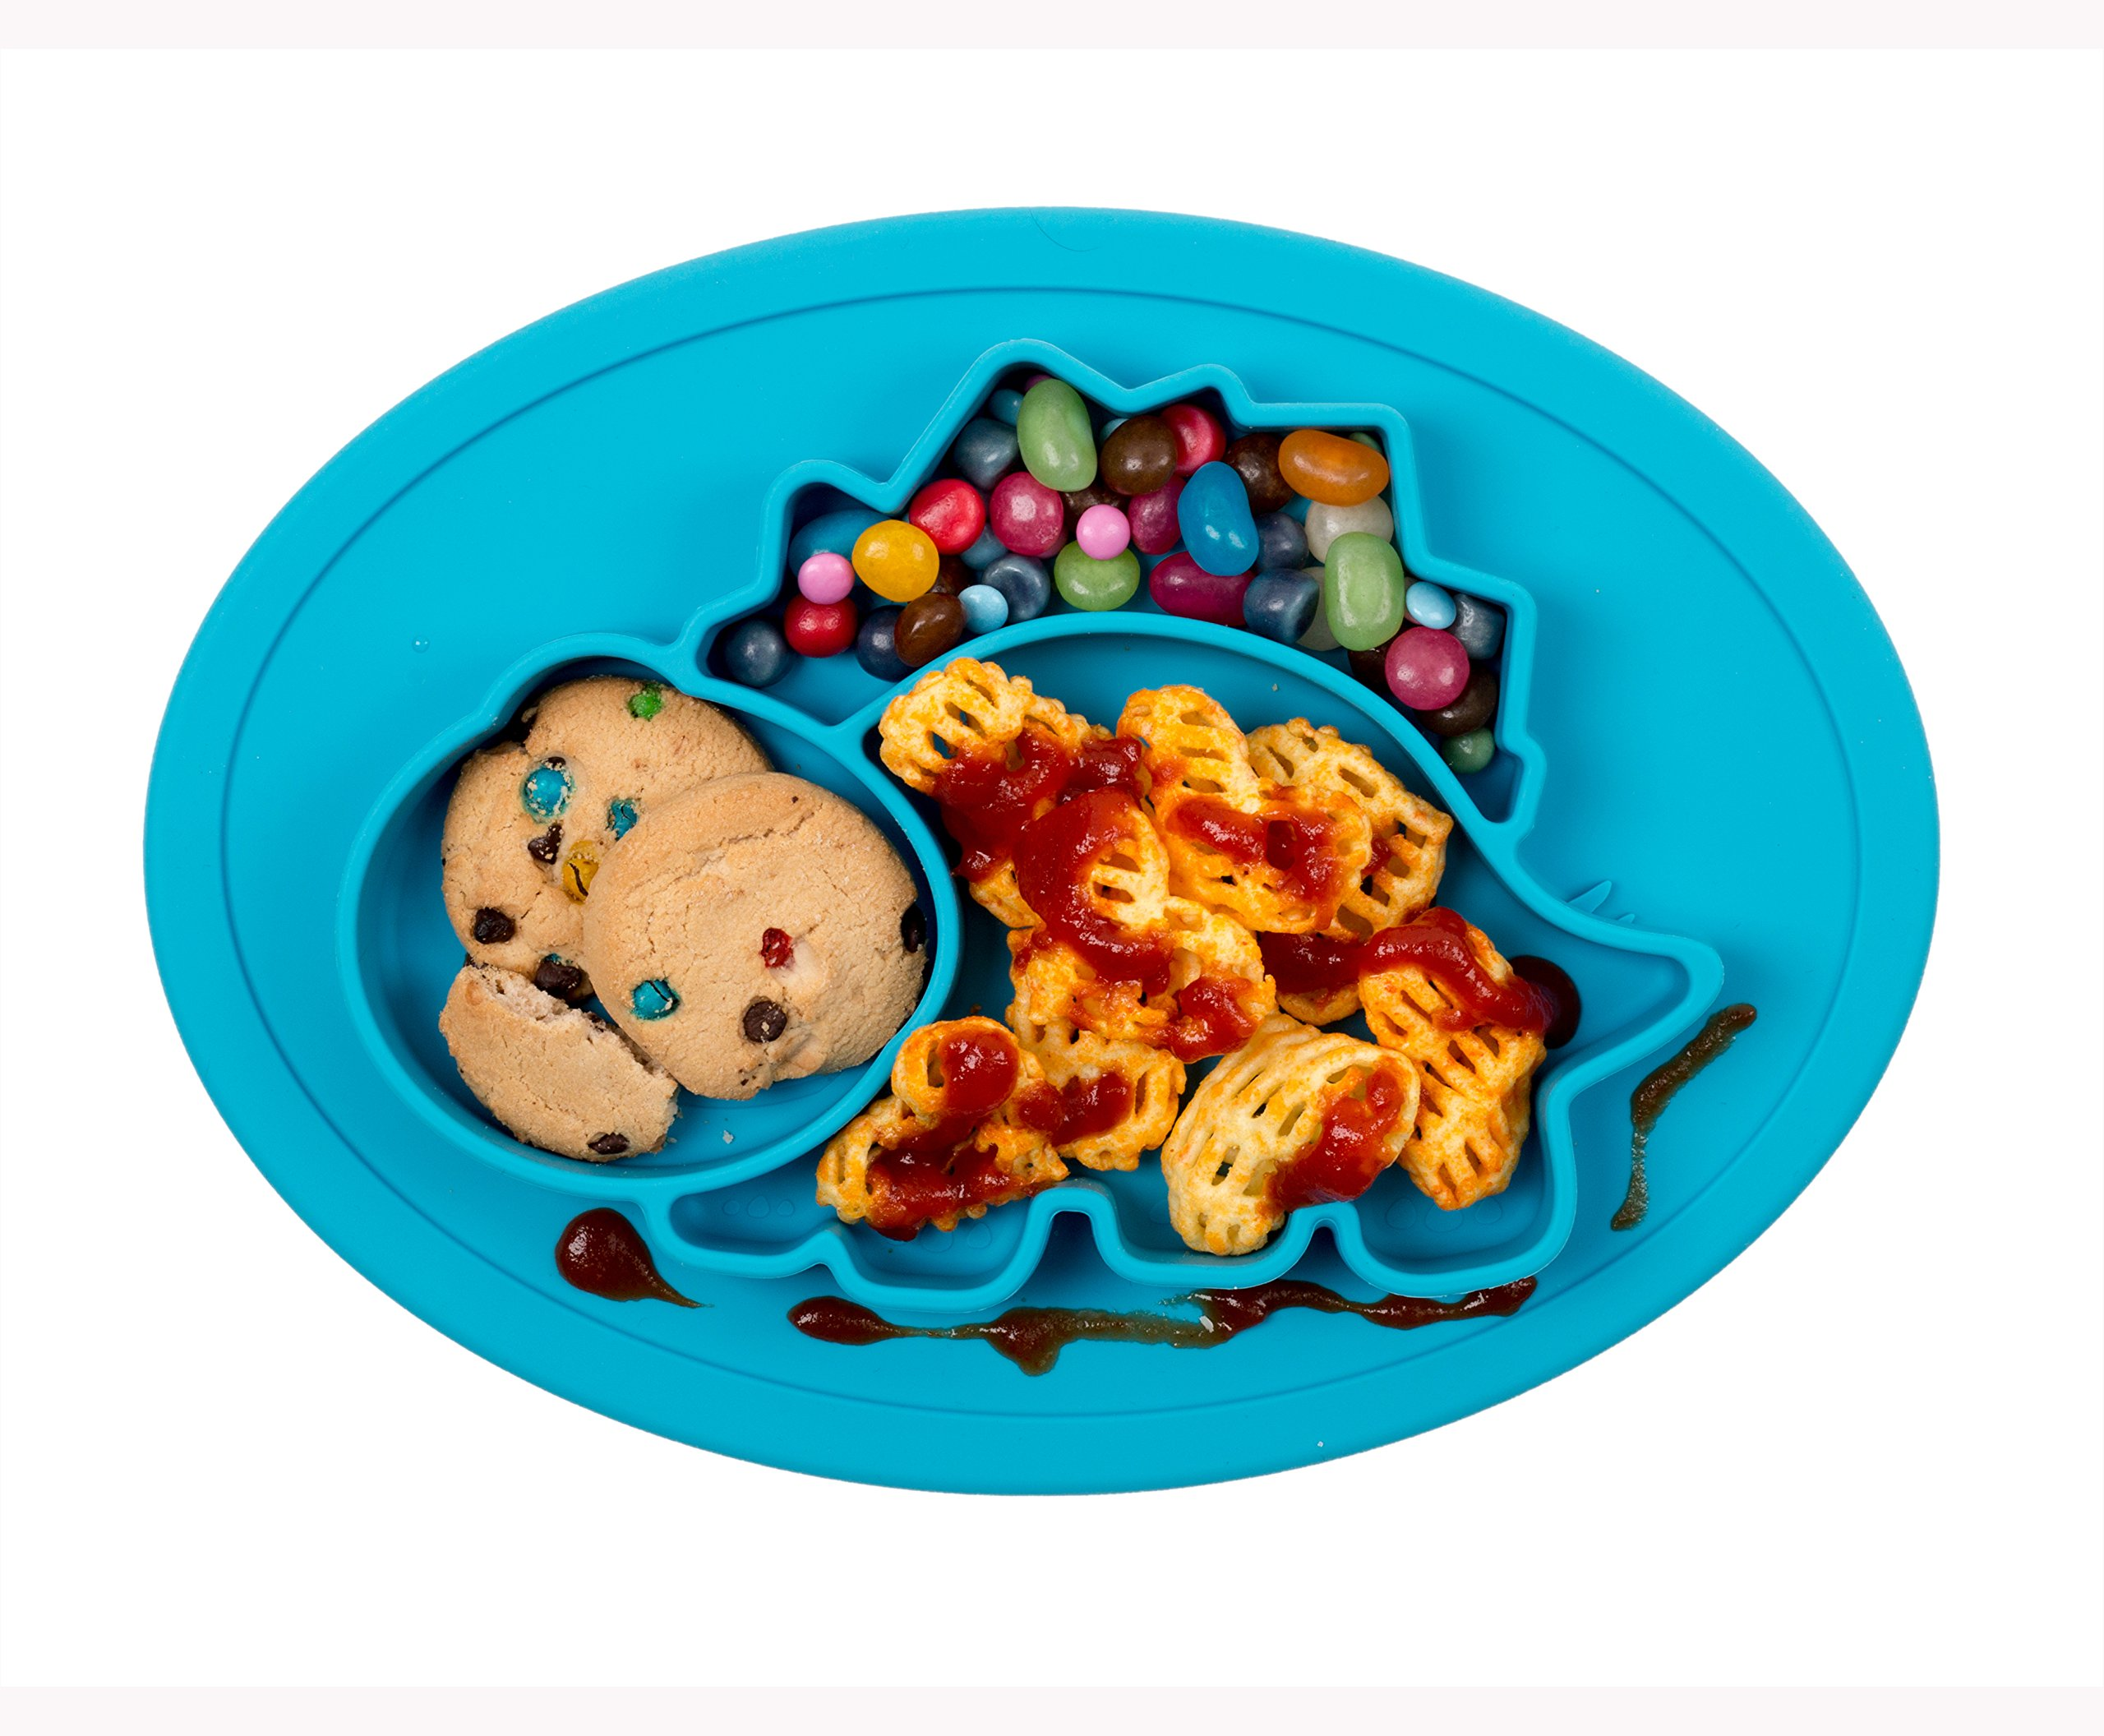 Amazon.com : Qshare Toddler Plates, One-Piece Baby Plate for Babies ...